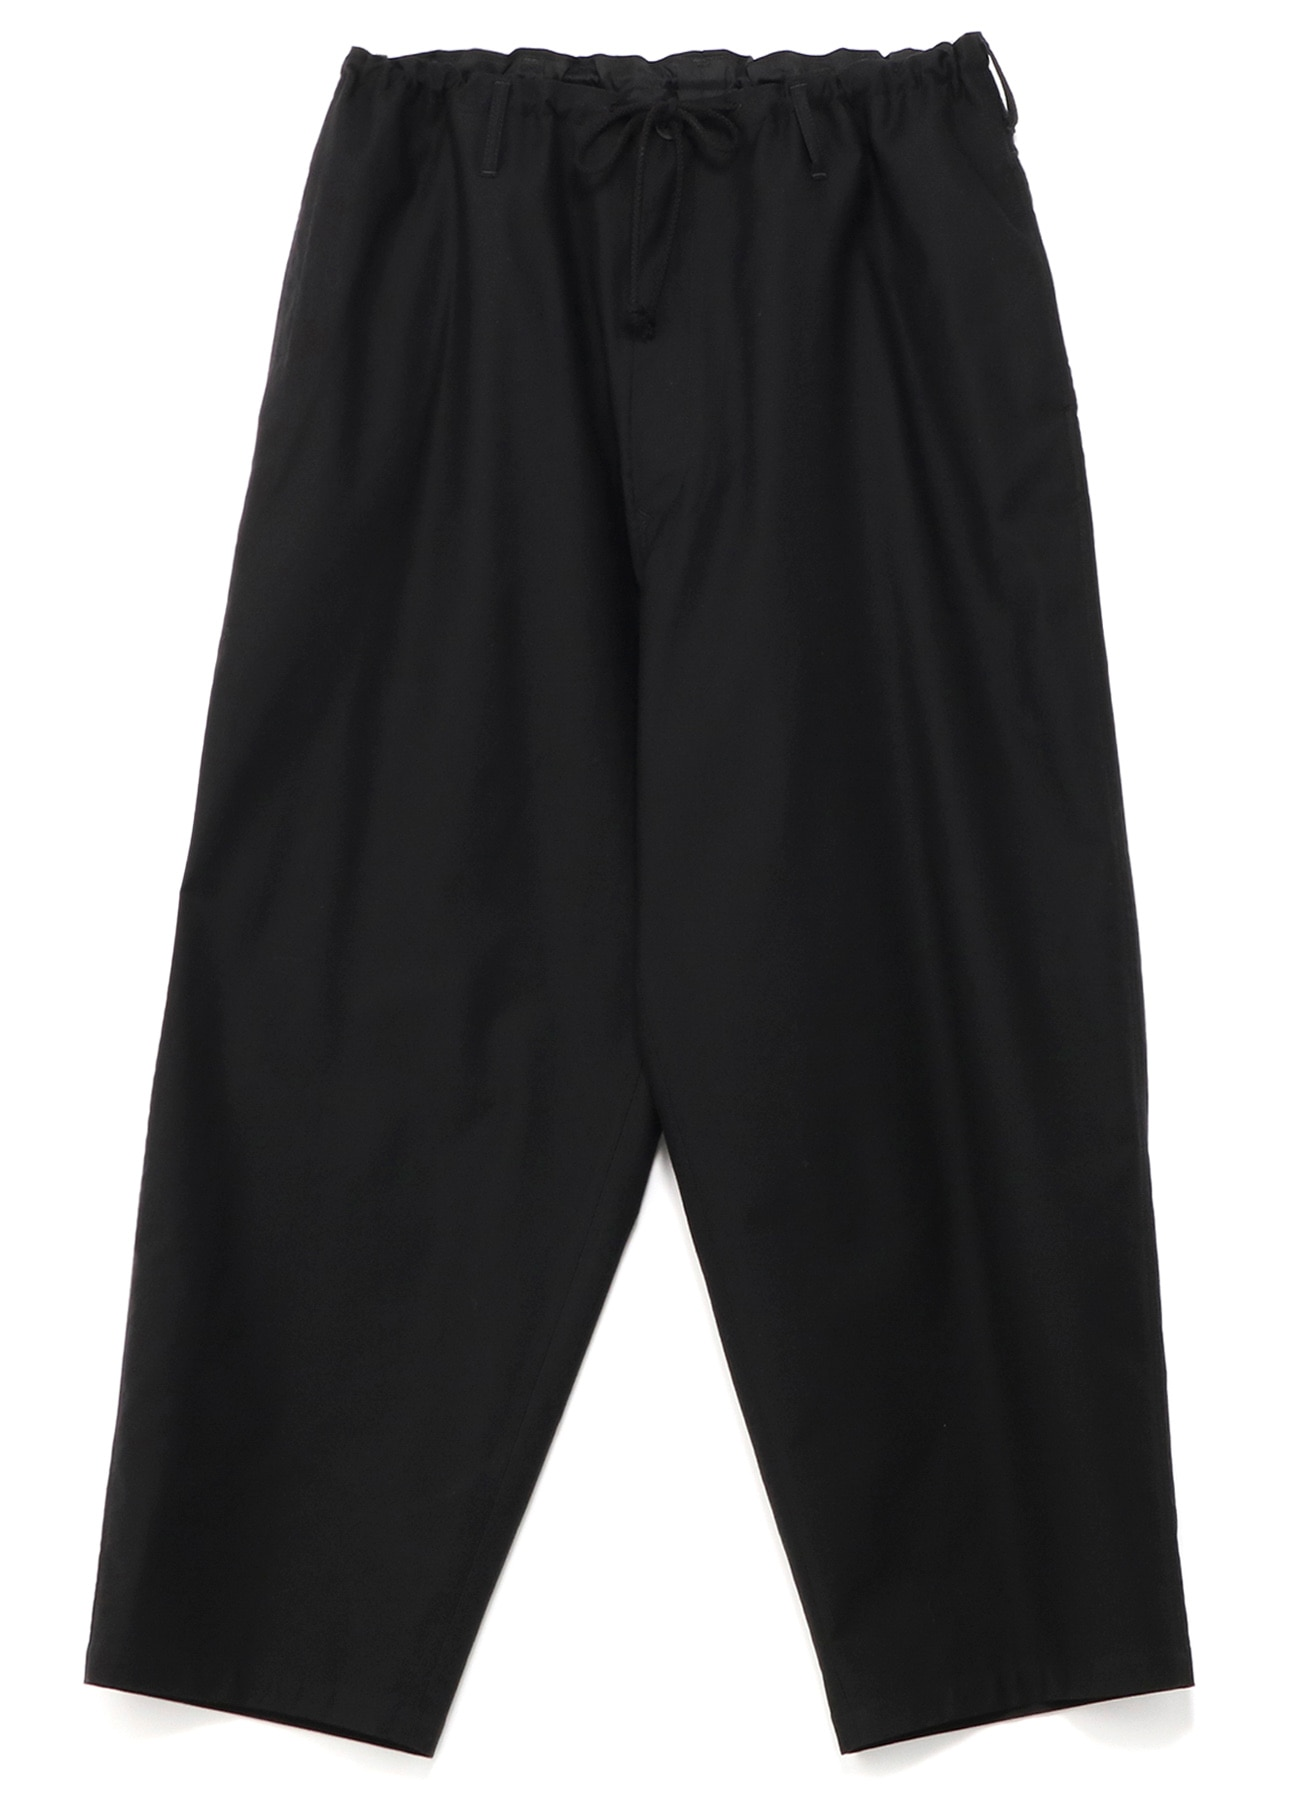 Cotton twill string pants